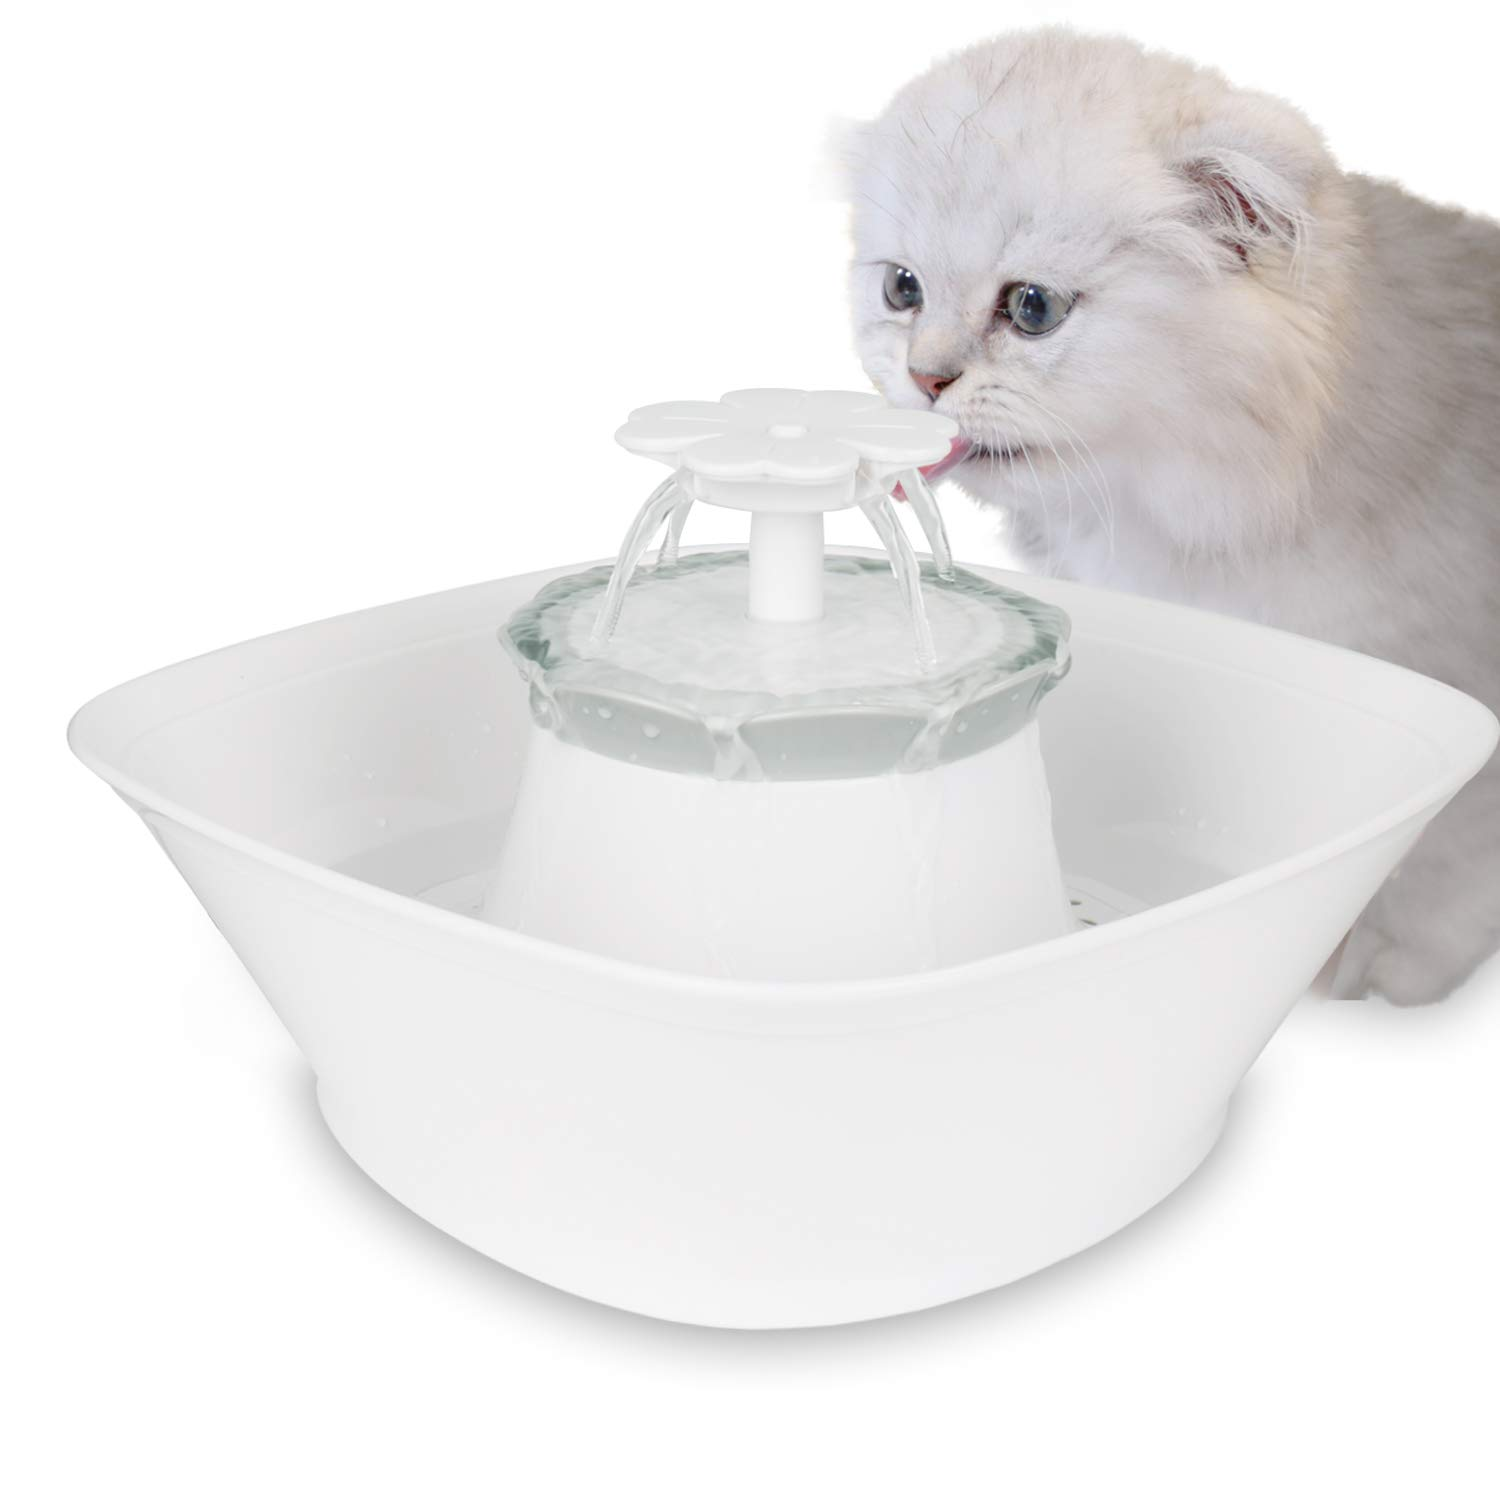 IPETTIE Clover Cat Water Fountain - 2.5L LED Lighted Pet Water Dispenser丨Dual Filters Fresh Clean Water丨Two Way Power丨Ultra Quiet丨LED Lighted for Cats, Dogs, Multiple Pets